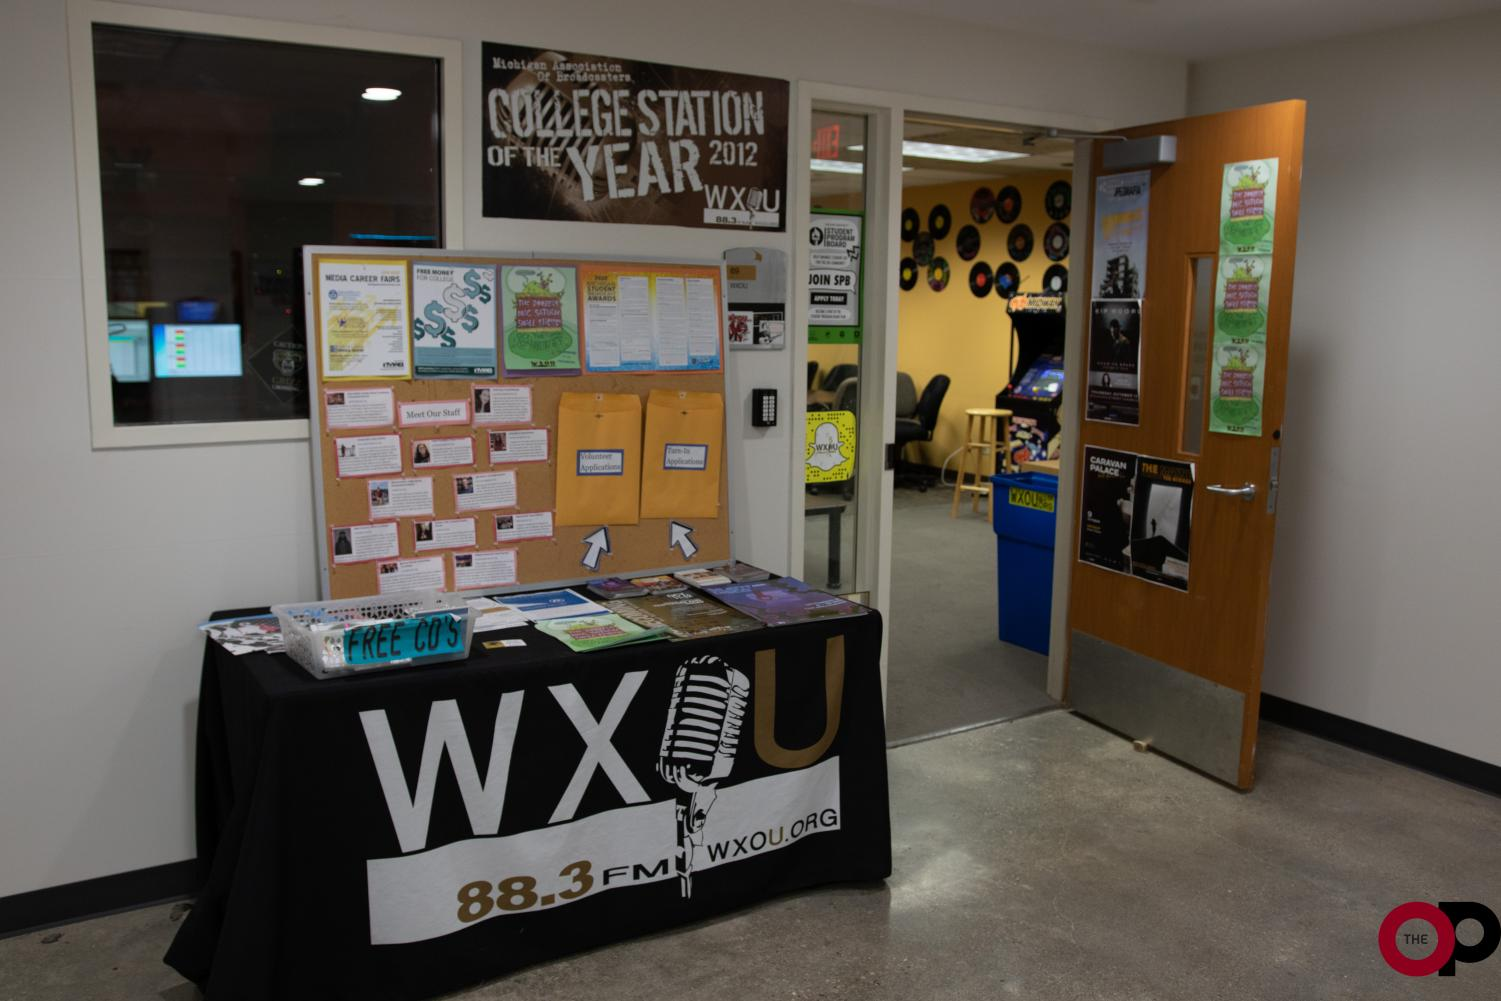 Students must fill out an application form for WXOU to consider hosting their radio show.